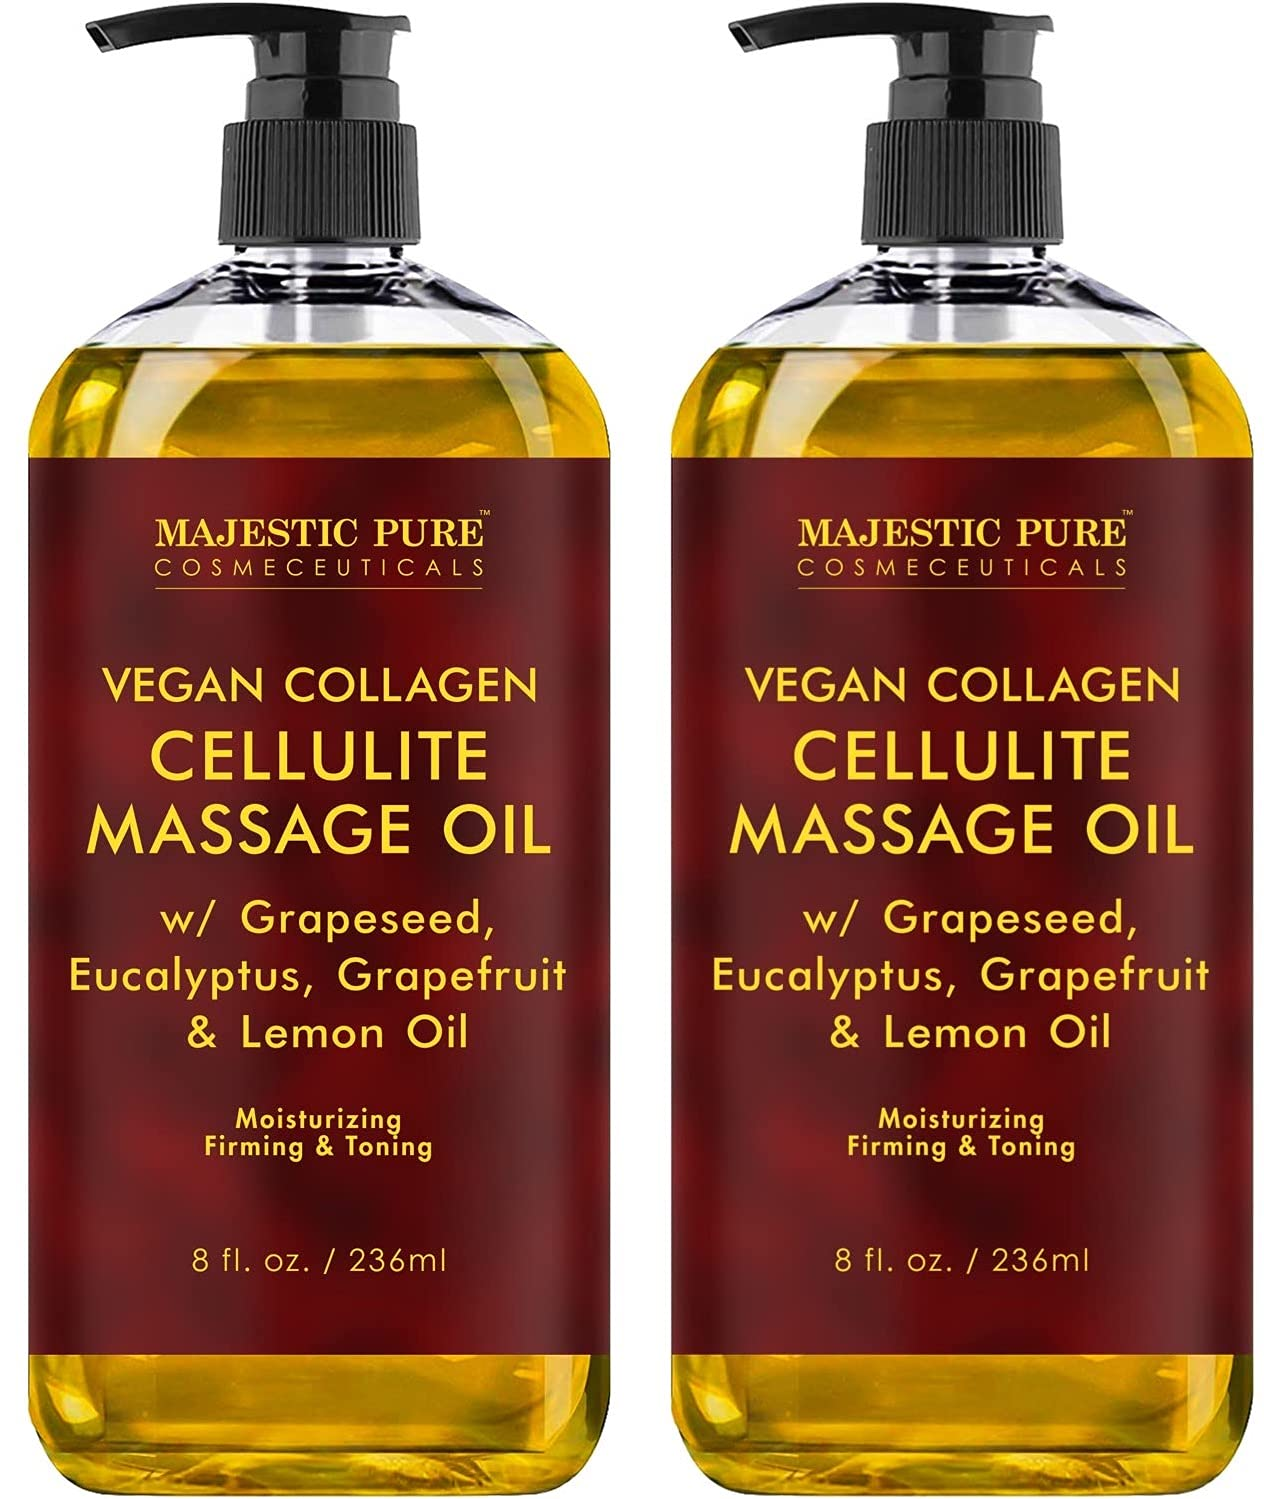 Buy MAJESTIC PURE Cellulite Massage Oil   with Vegan Collagen ...